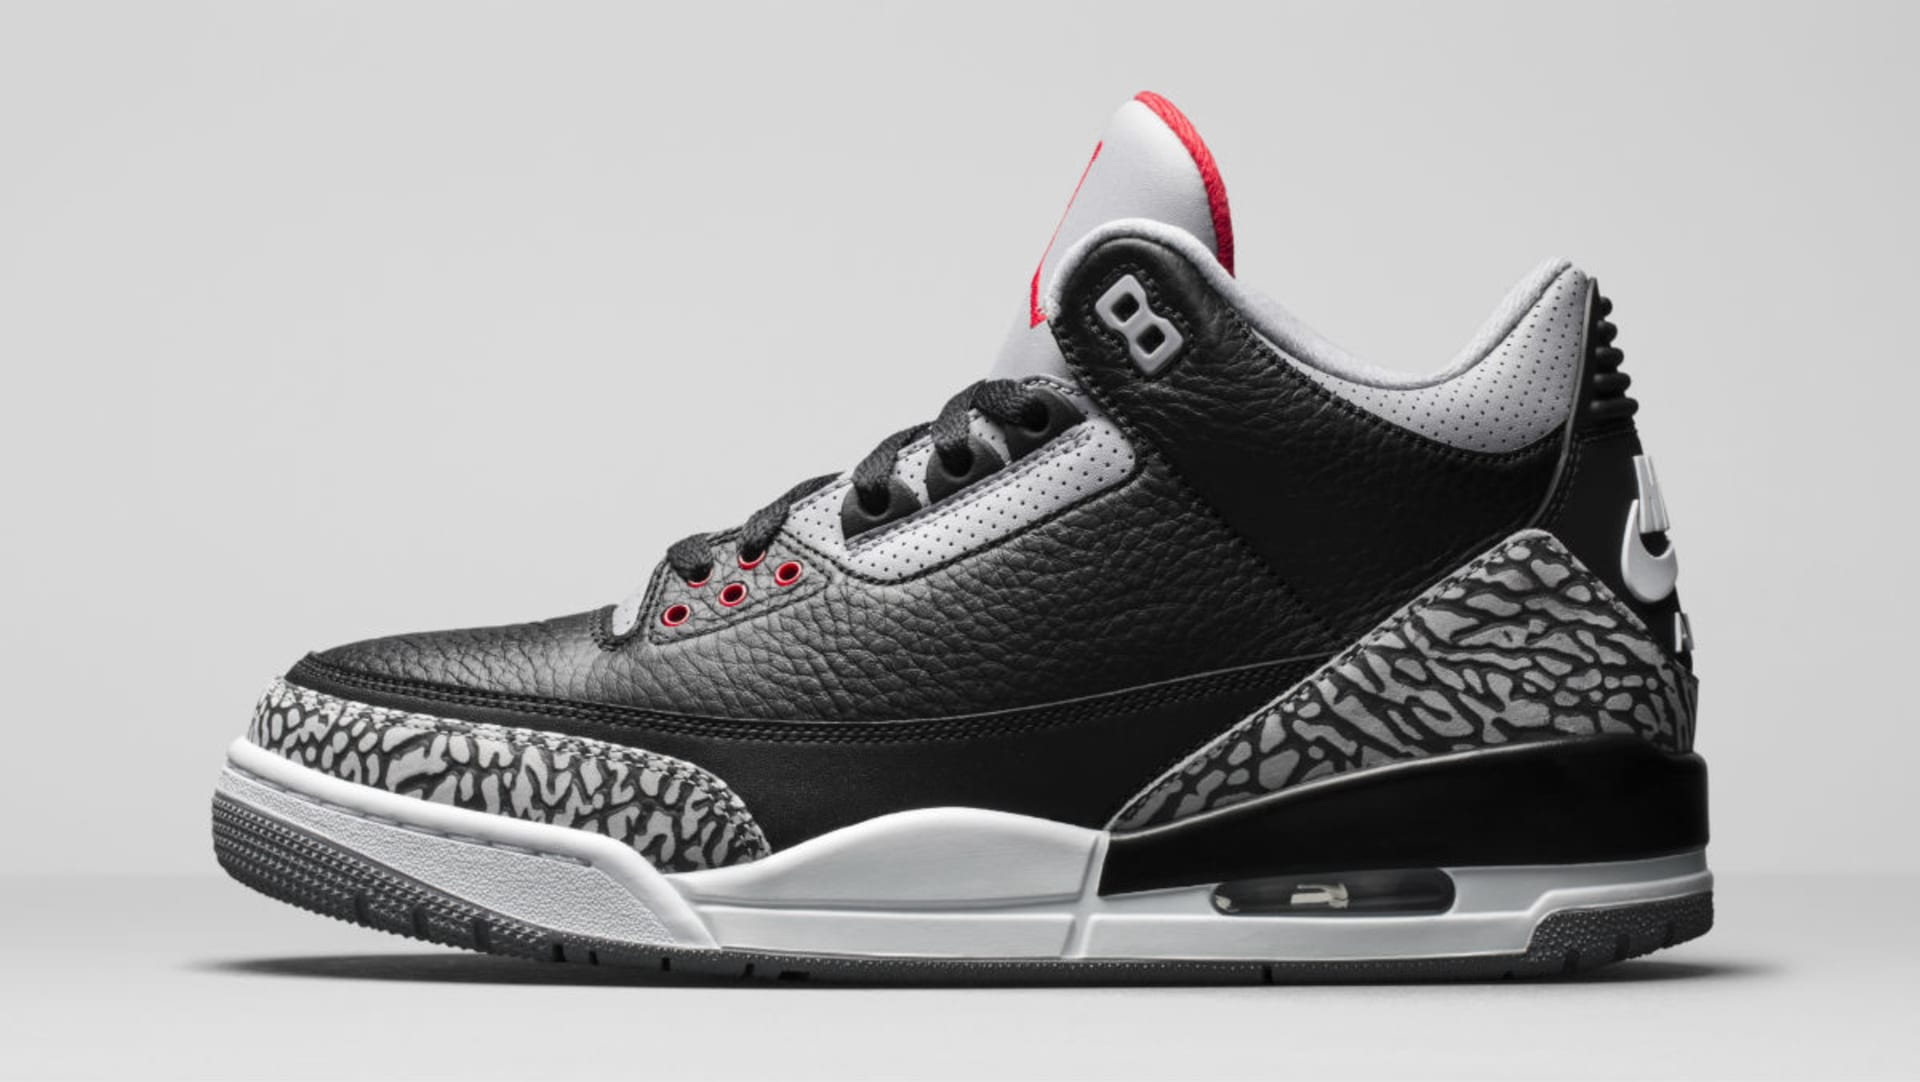 60f1ed2122ad Air Jordan 3 III Black Cement Release Date 854262-001 Profile